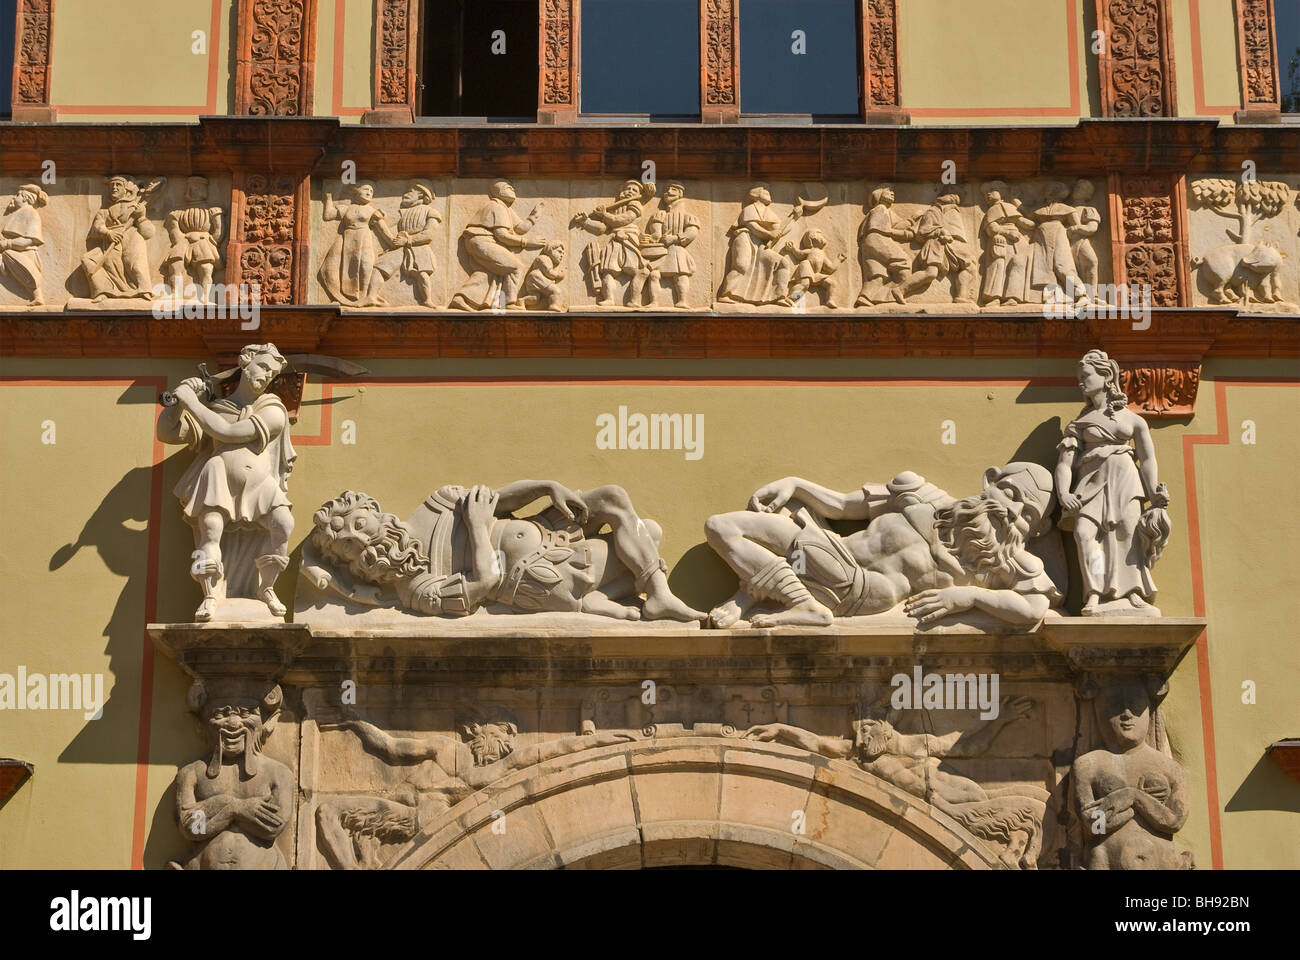 High reliefs over entrance to Fürstenhof castle in Wismar in Mecklenburg-West Pomerania, Germany Stock Photo